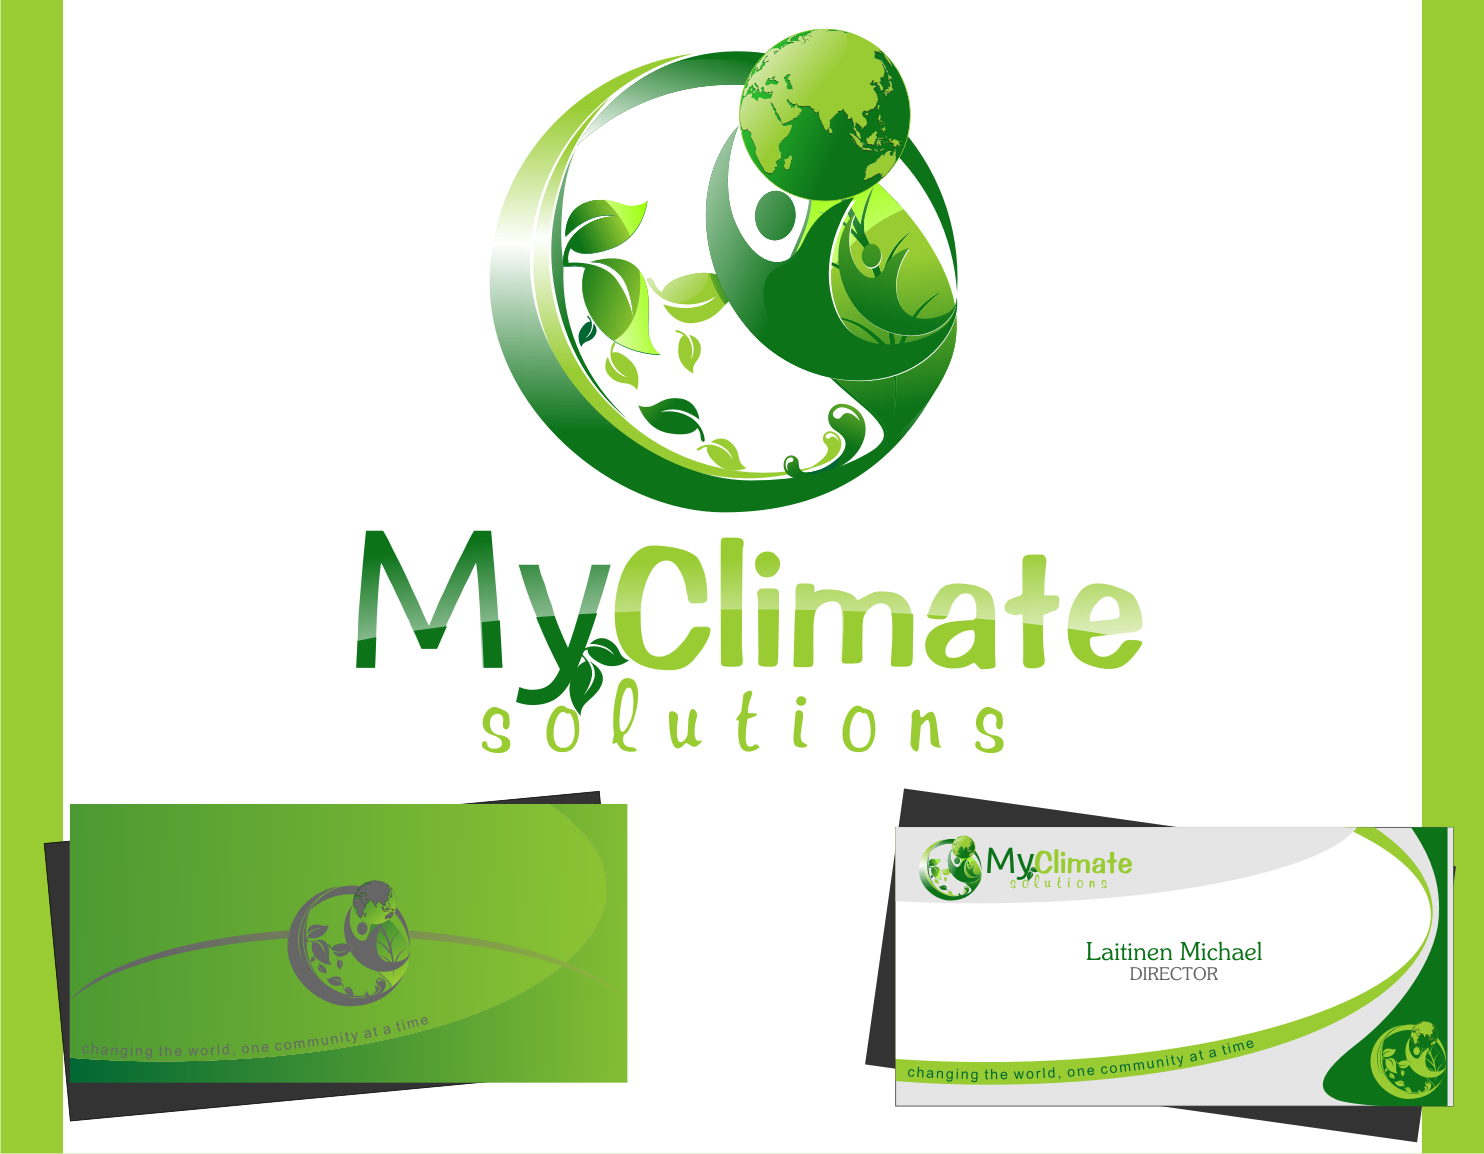 New logo wanted for MyClimateSolutions